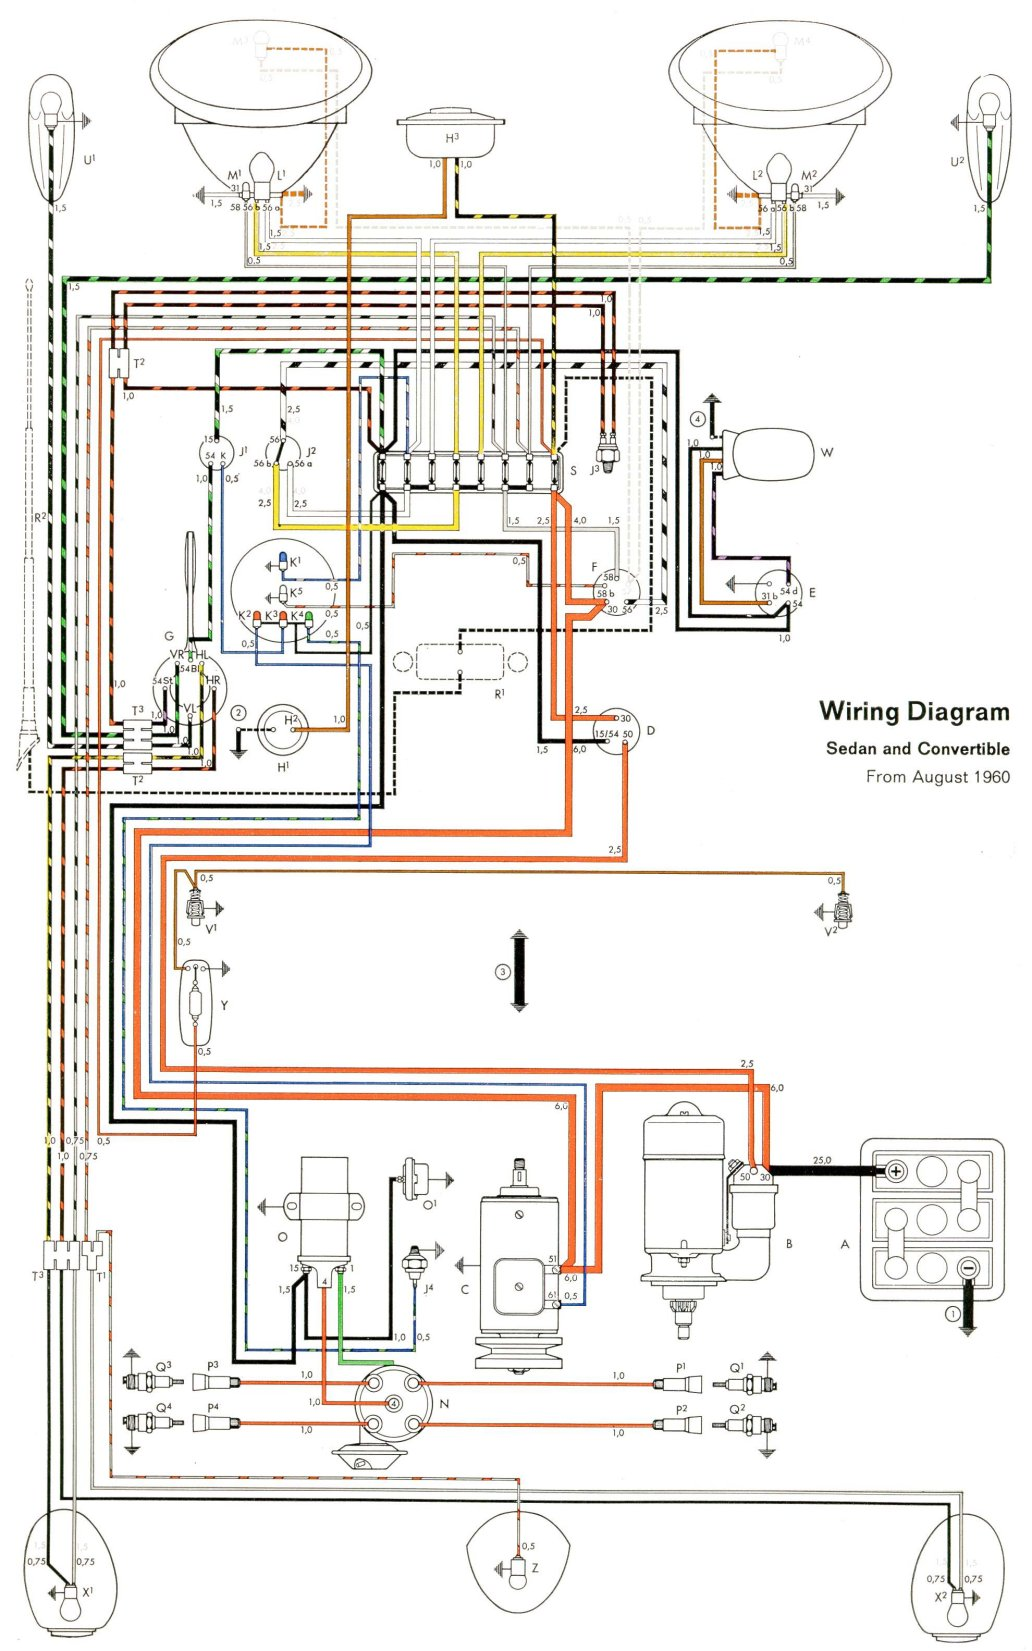 bug_61 vw wiring harness diagram vw wiring diagrams instruction empi wiring harness diagram at panicattacktreatment.co